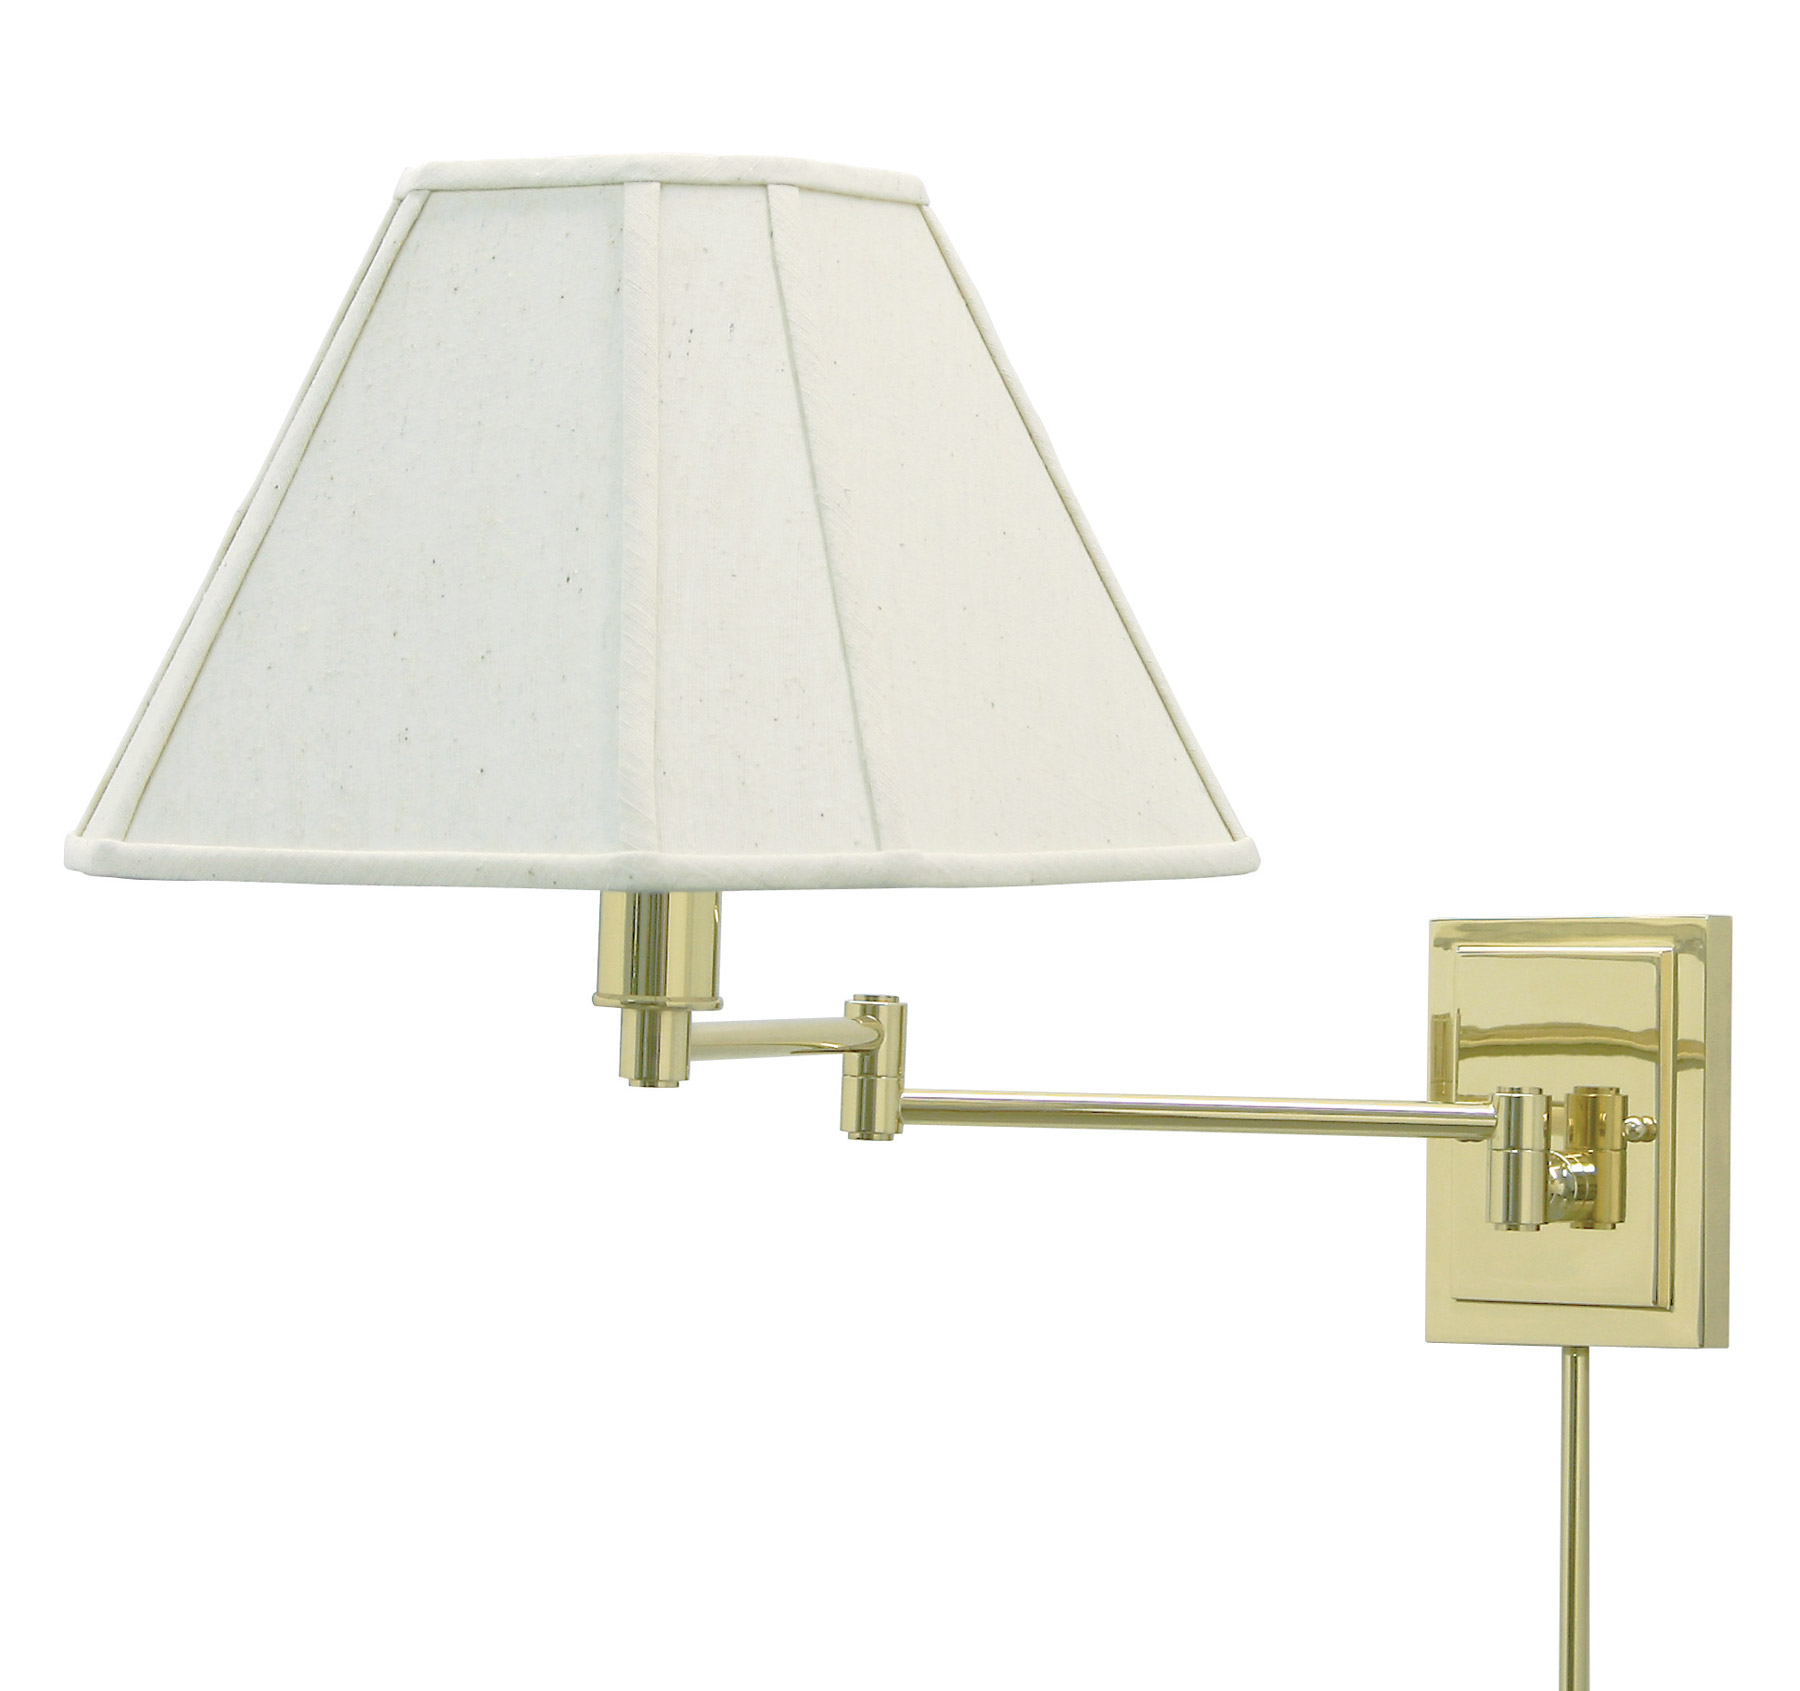 House of troy ws16 61 swing arm wall lamp Beautiful swing arm wall lamps and sconces